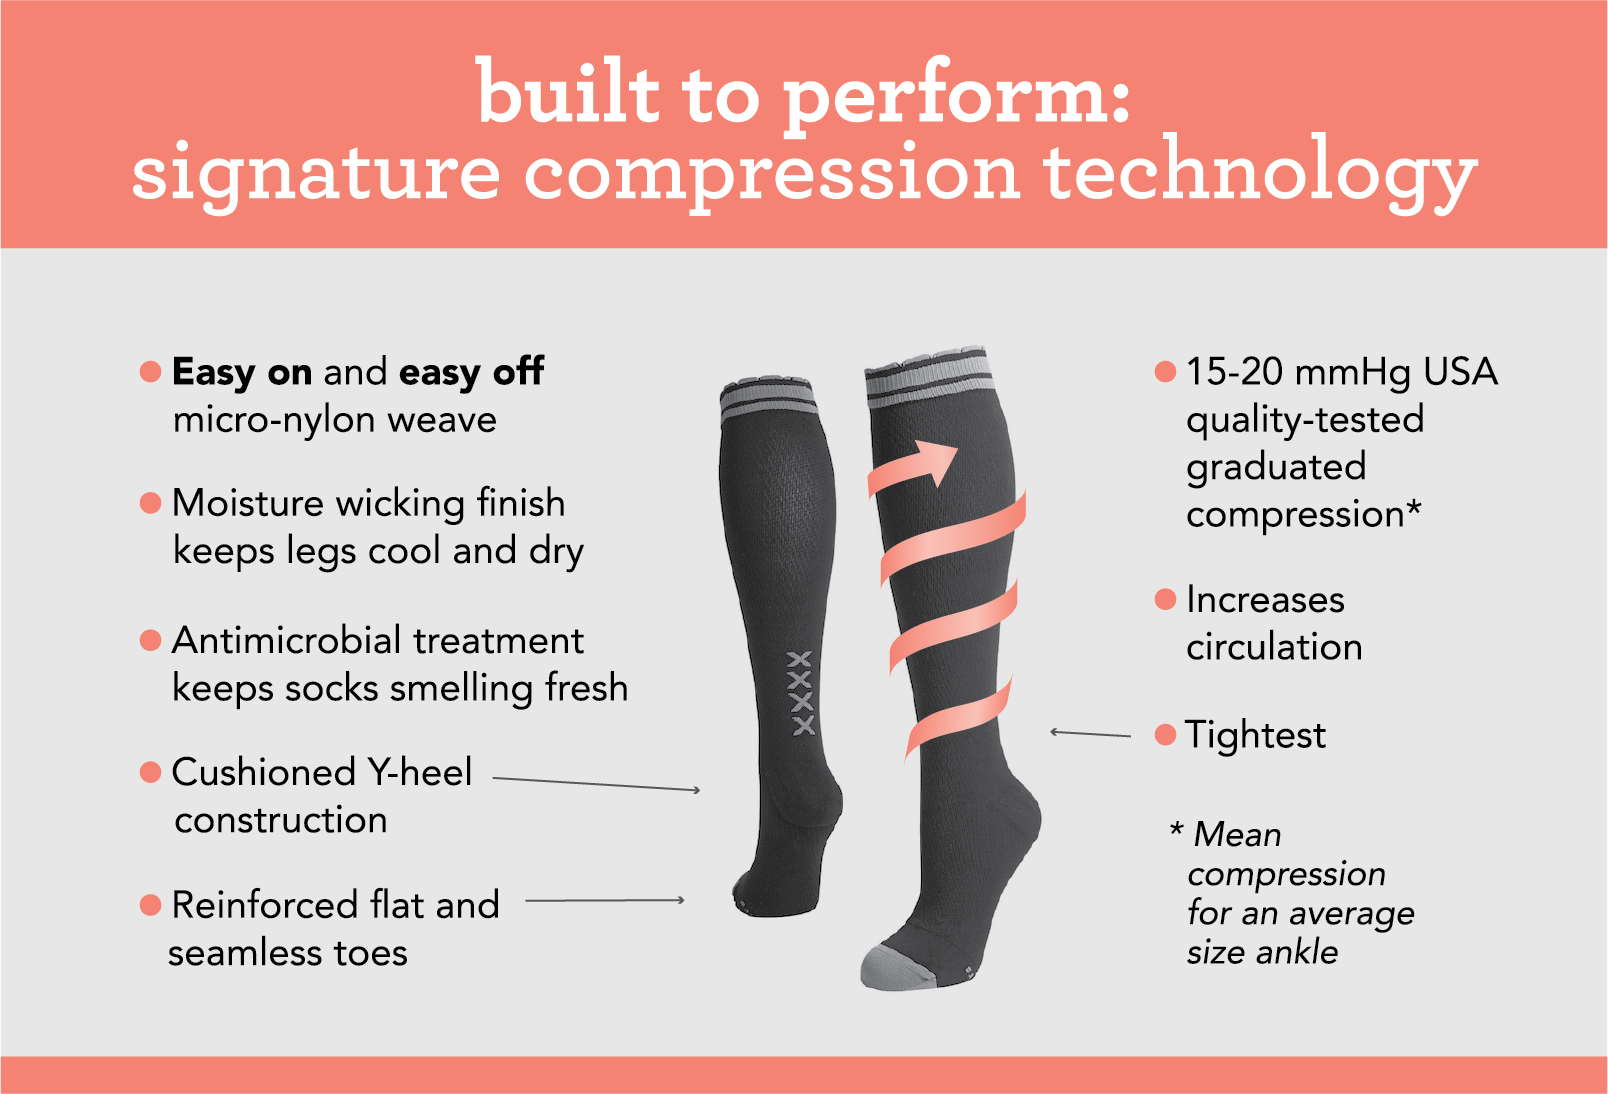 Our women's compression socks are built to perform.